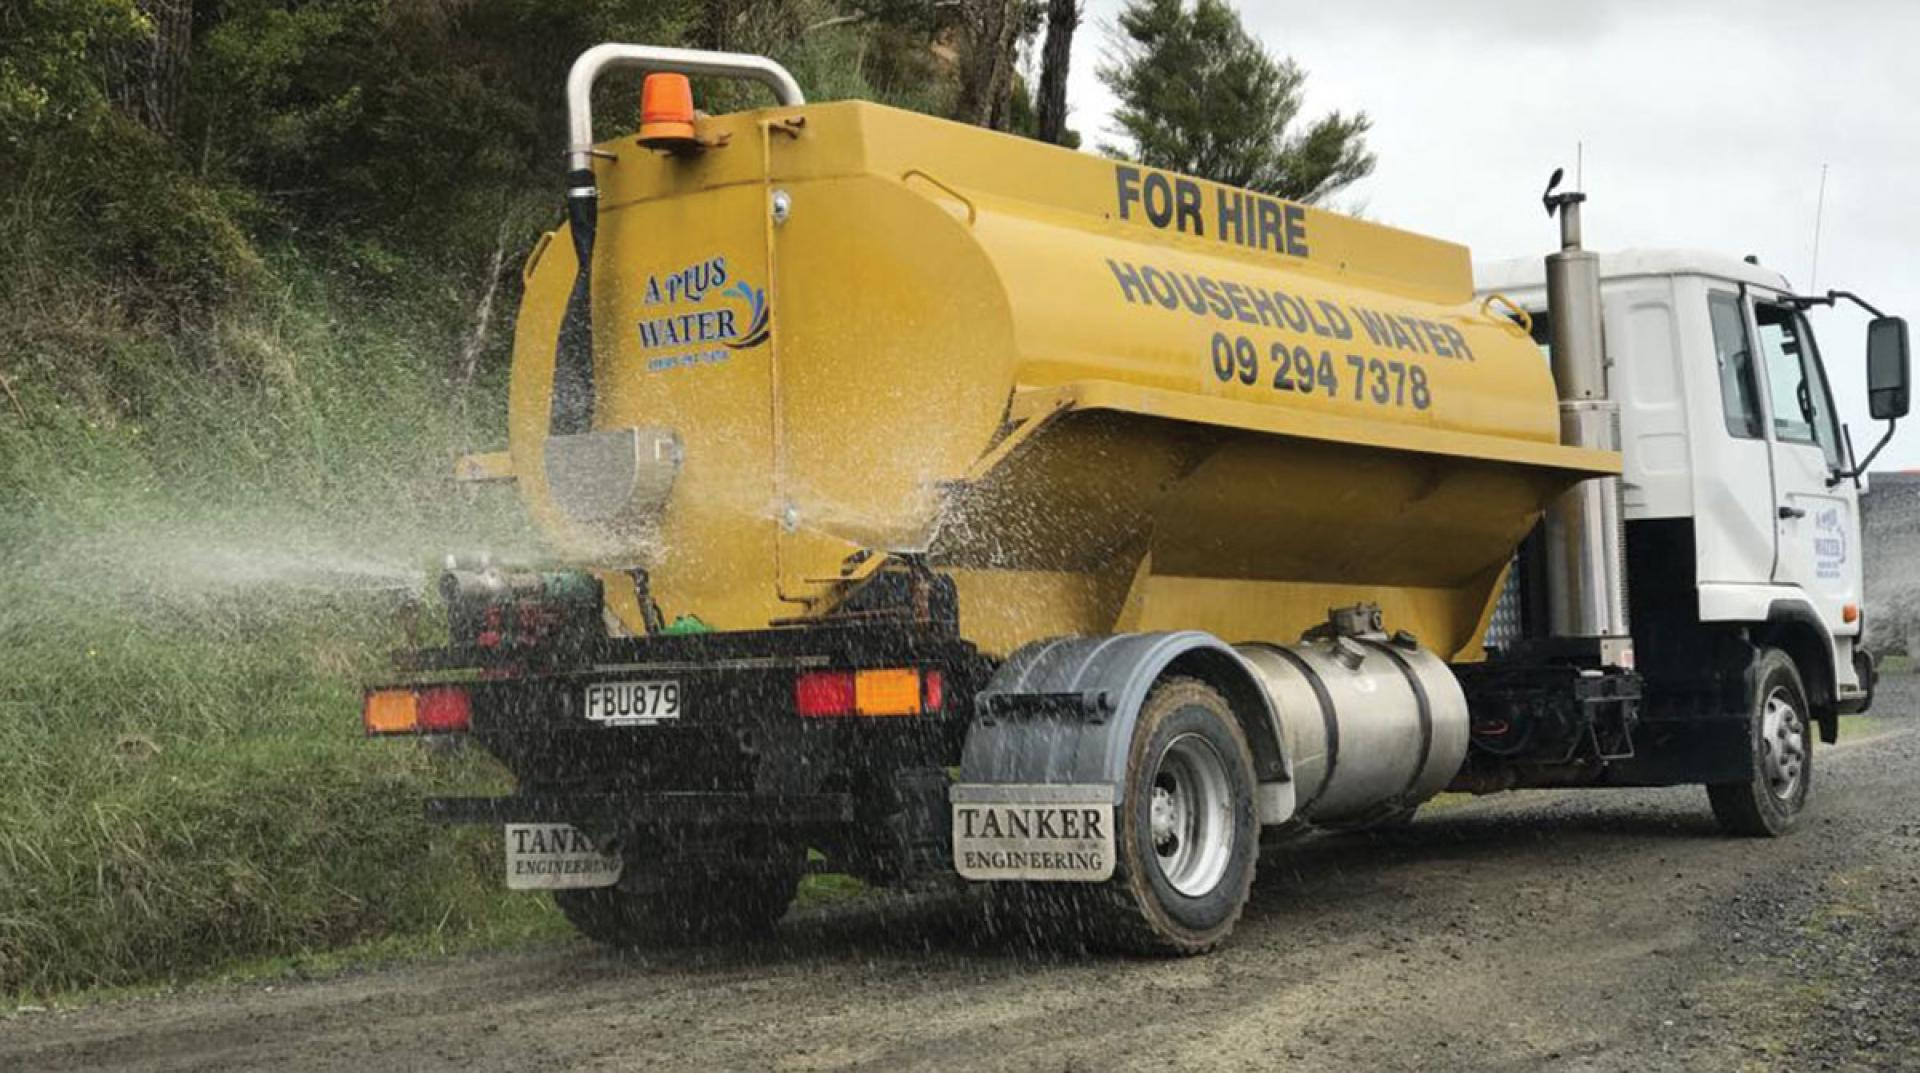 A Plus Water truck for houshold water.